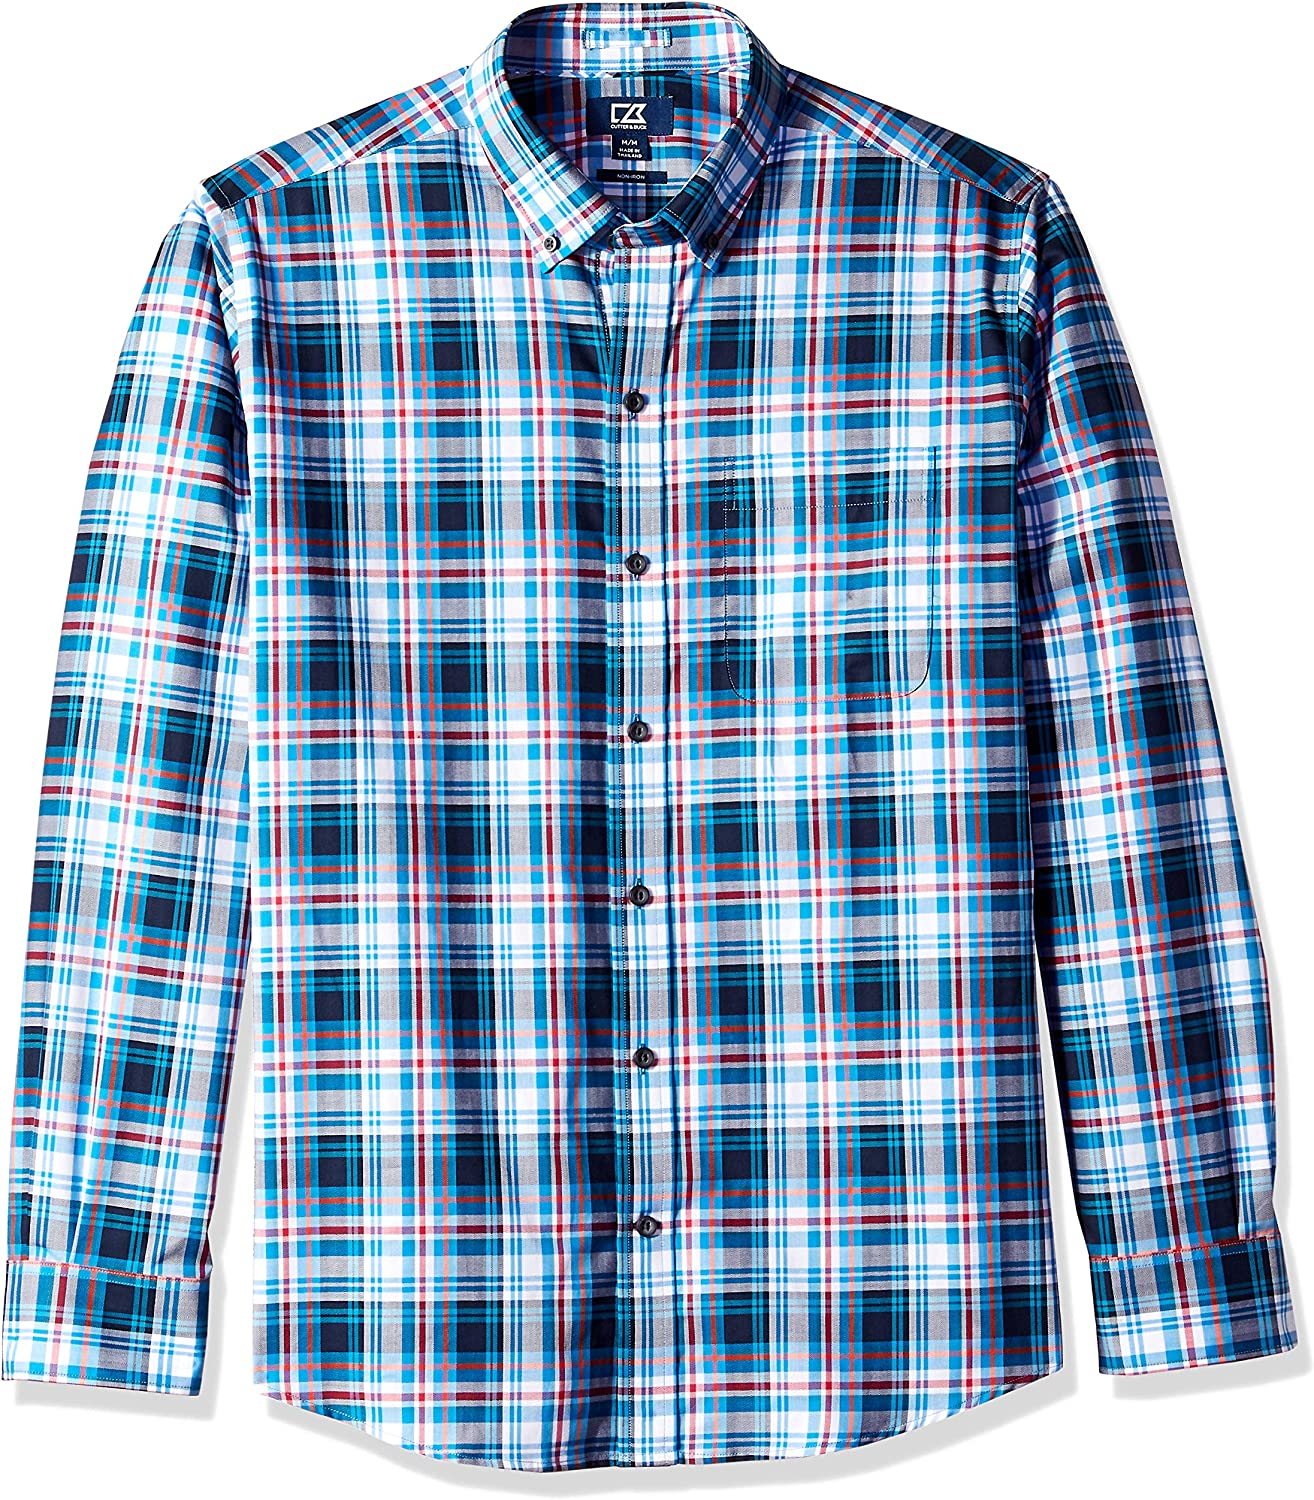 Cutter Special price Buck Men's Large Plaid and Check Care Quality inspection Button Down Easy